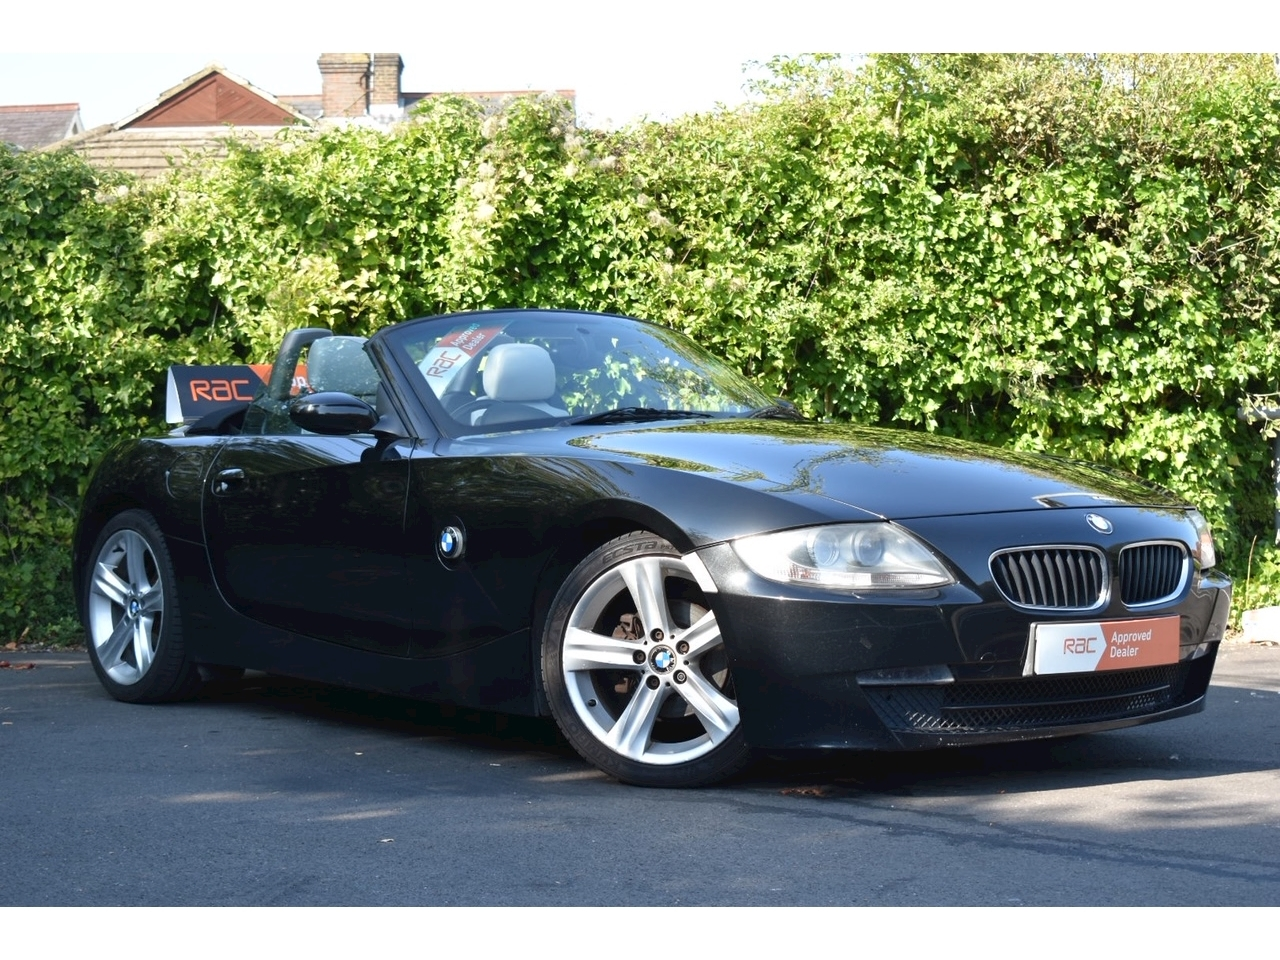 Z4 Series Z4 2.0i SE Roadster 2.0 2dr Roadster Manual Petrol